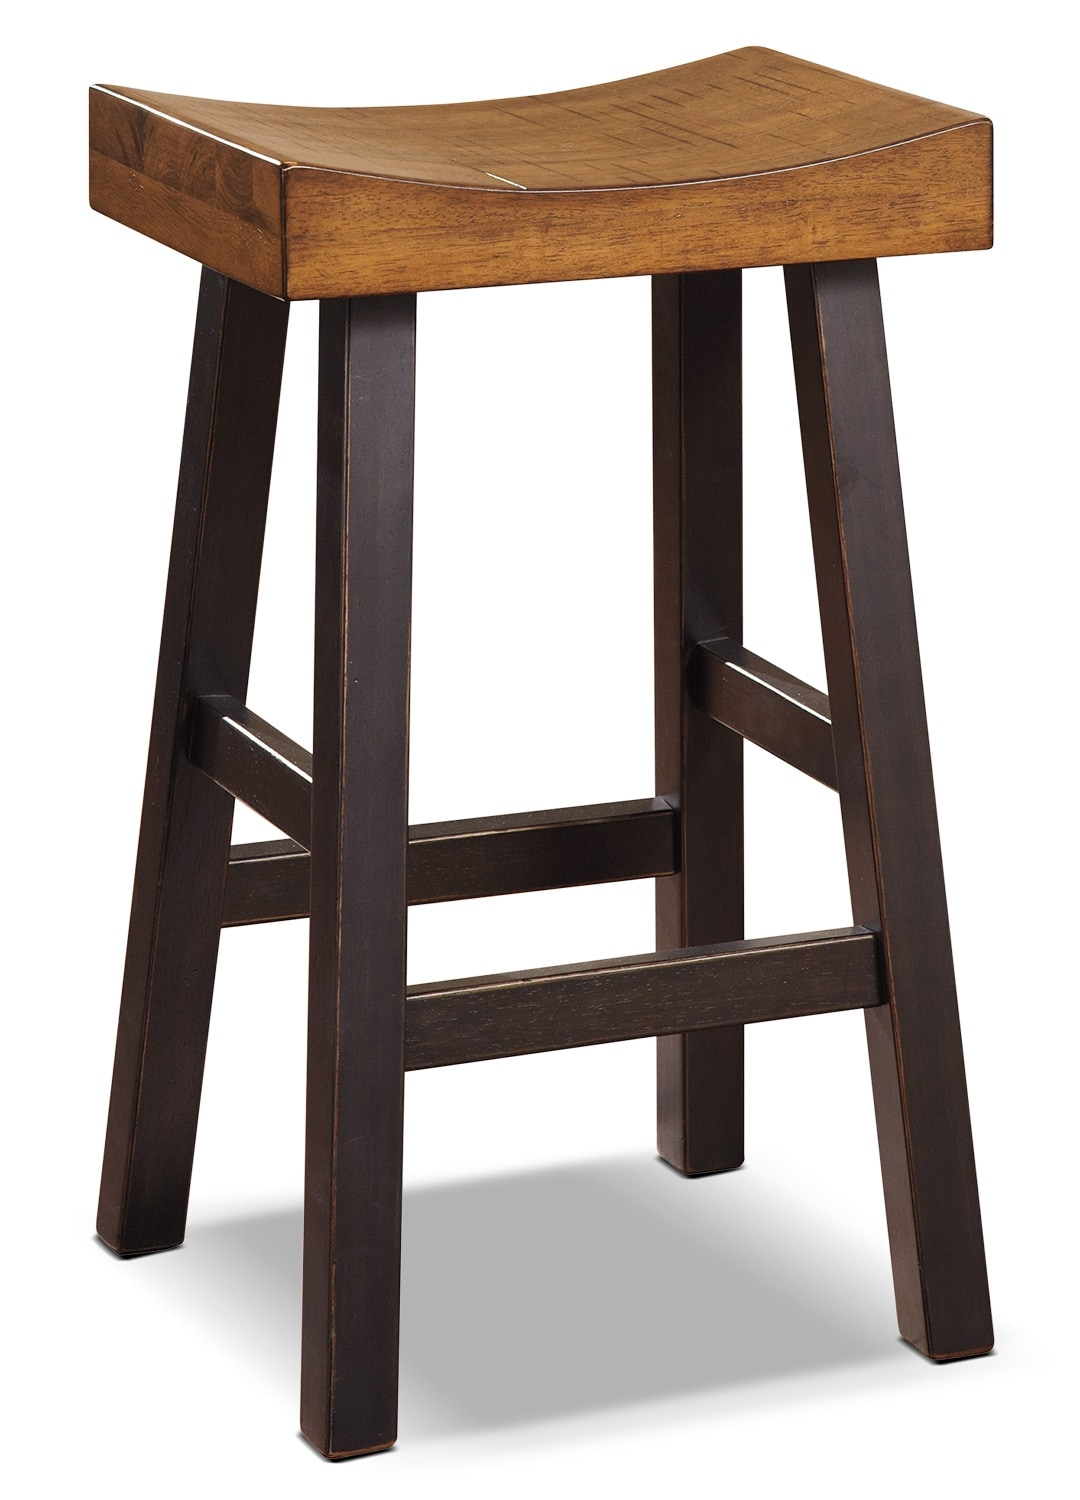 "Dining Room Furniture - Glosco 30"" Saddle-Seat Bar Stool"